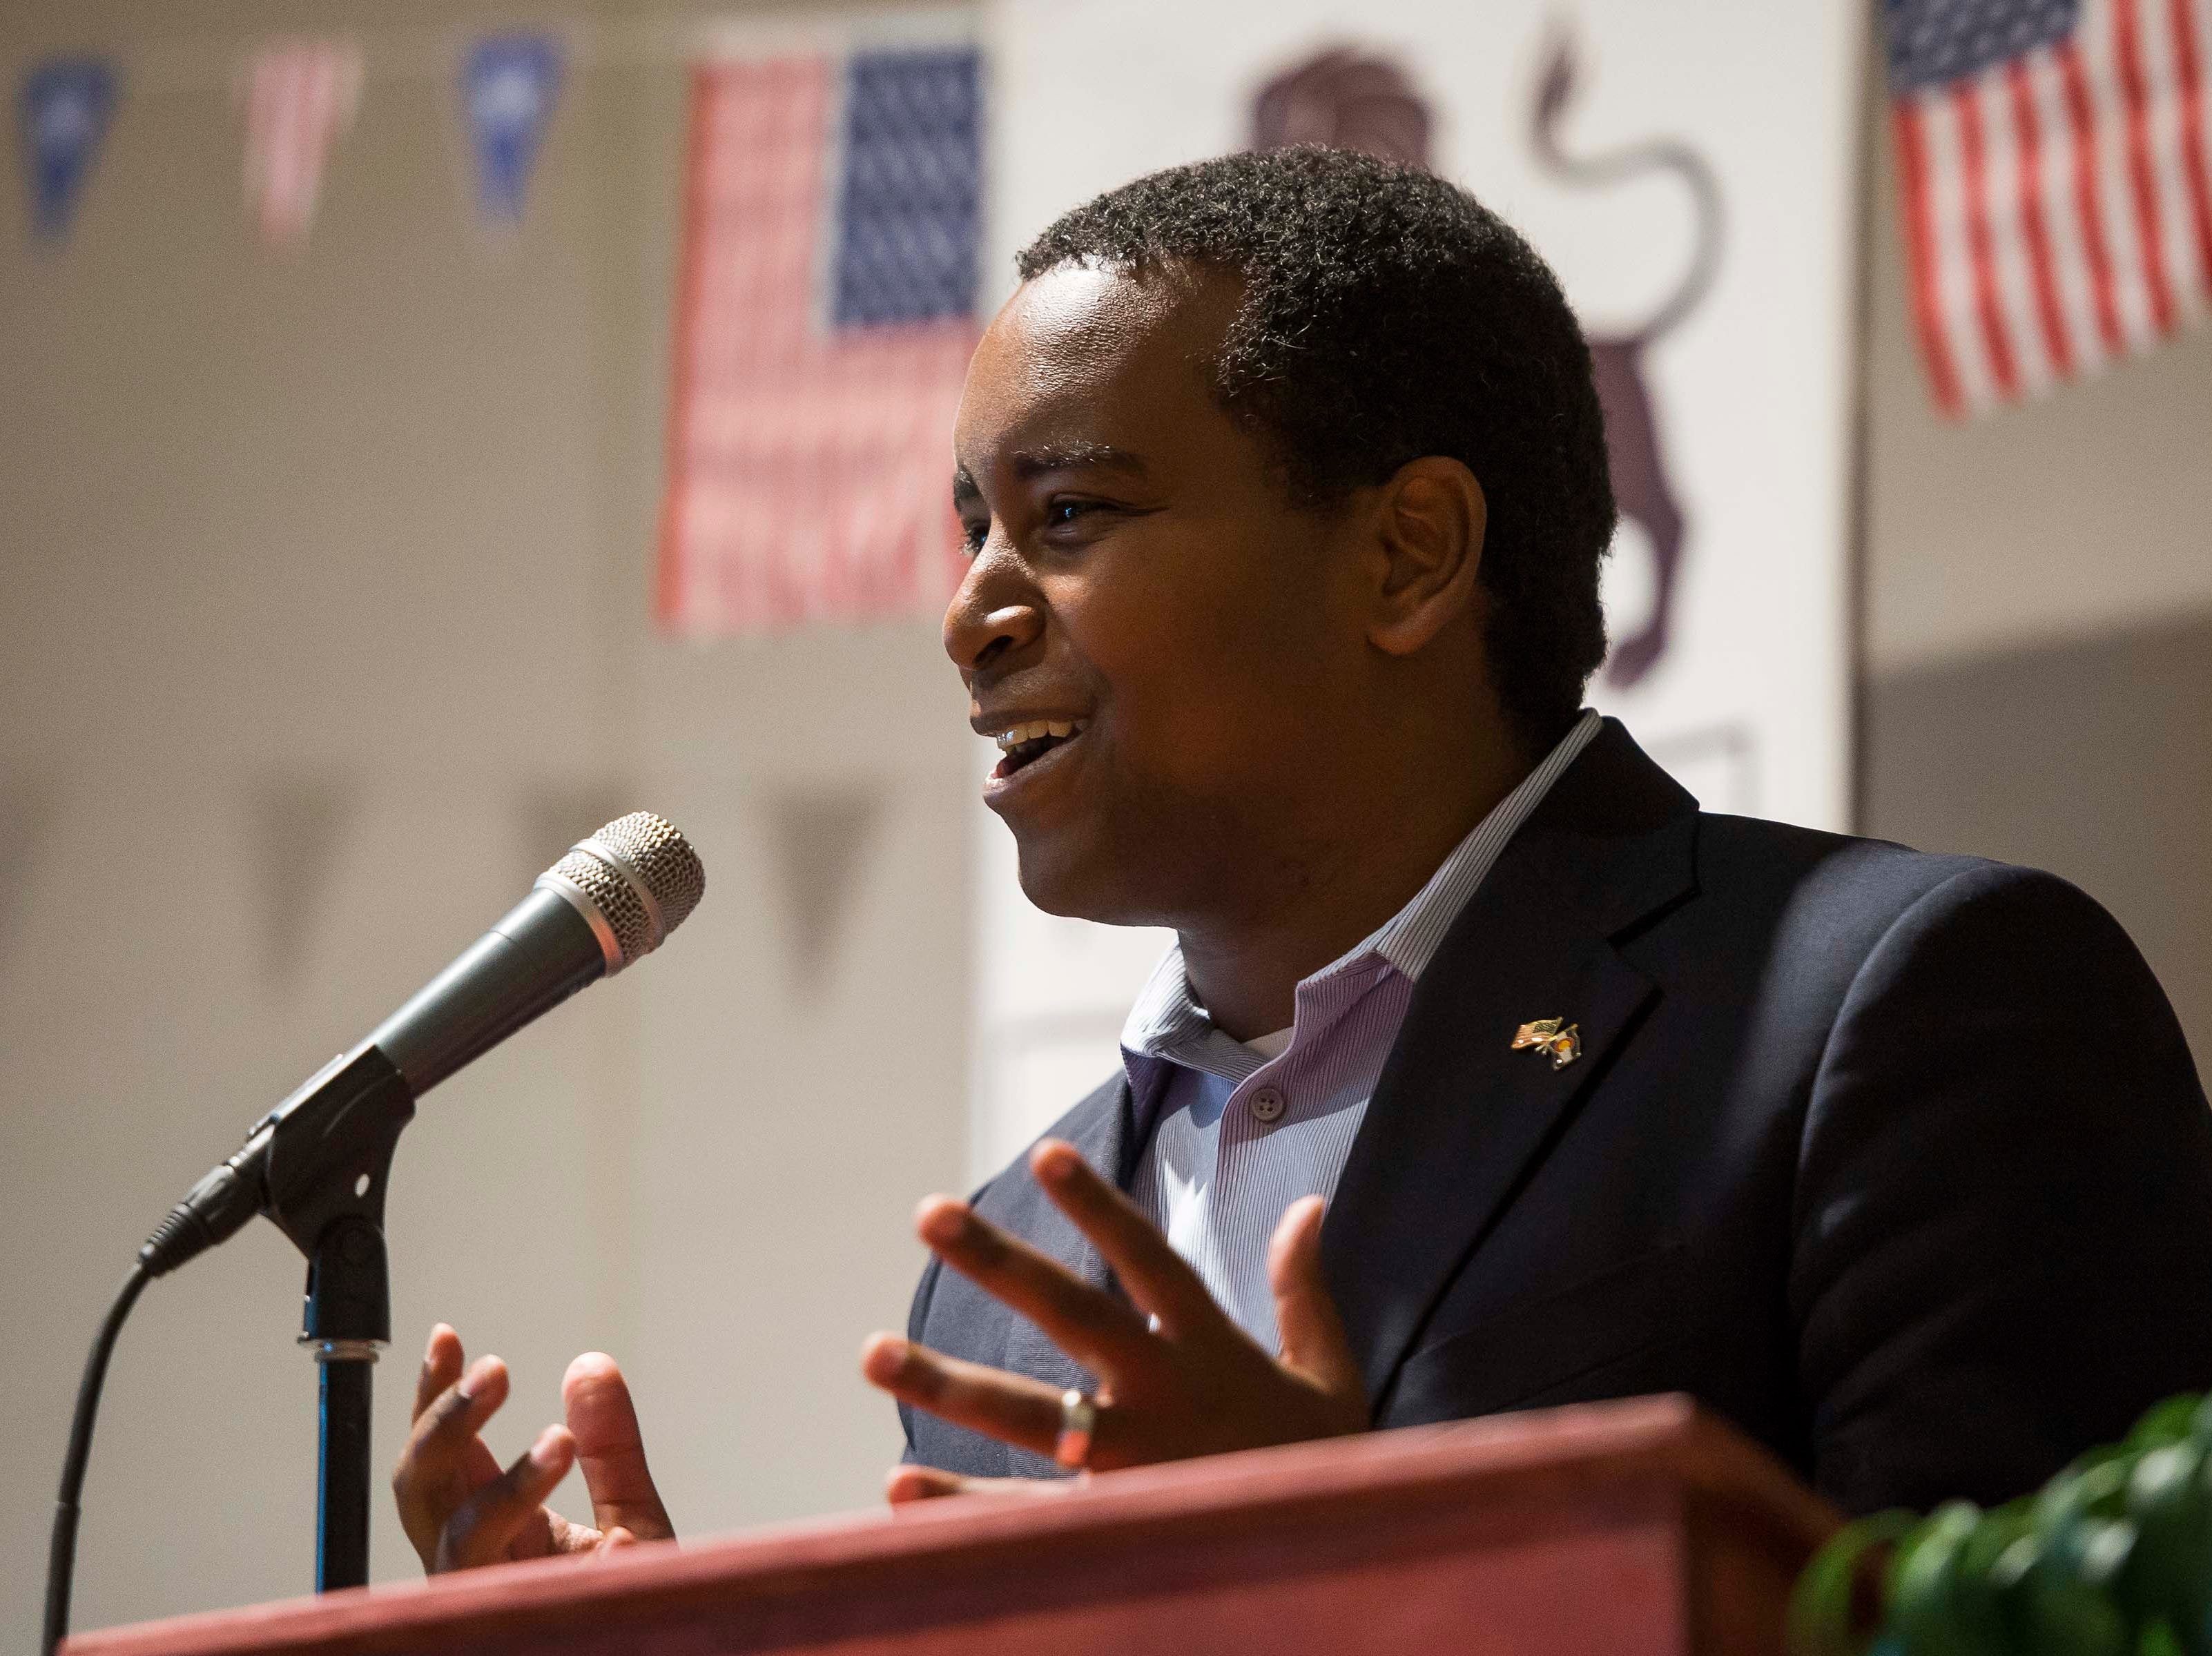 Colorado's 2nd Congressional District Democratic nominee Joe Neguse gives his opening statement before participates in a debate with Republican nominee Peter Yu on Wednesday, Sept. 26, 2018, at the Loveland Classical Schools in Loveland, Colo.